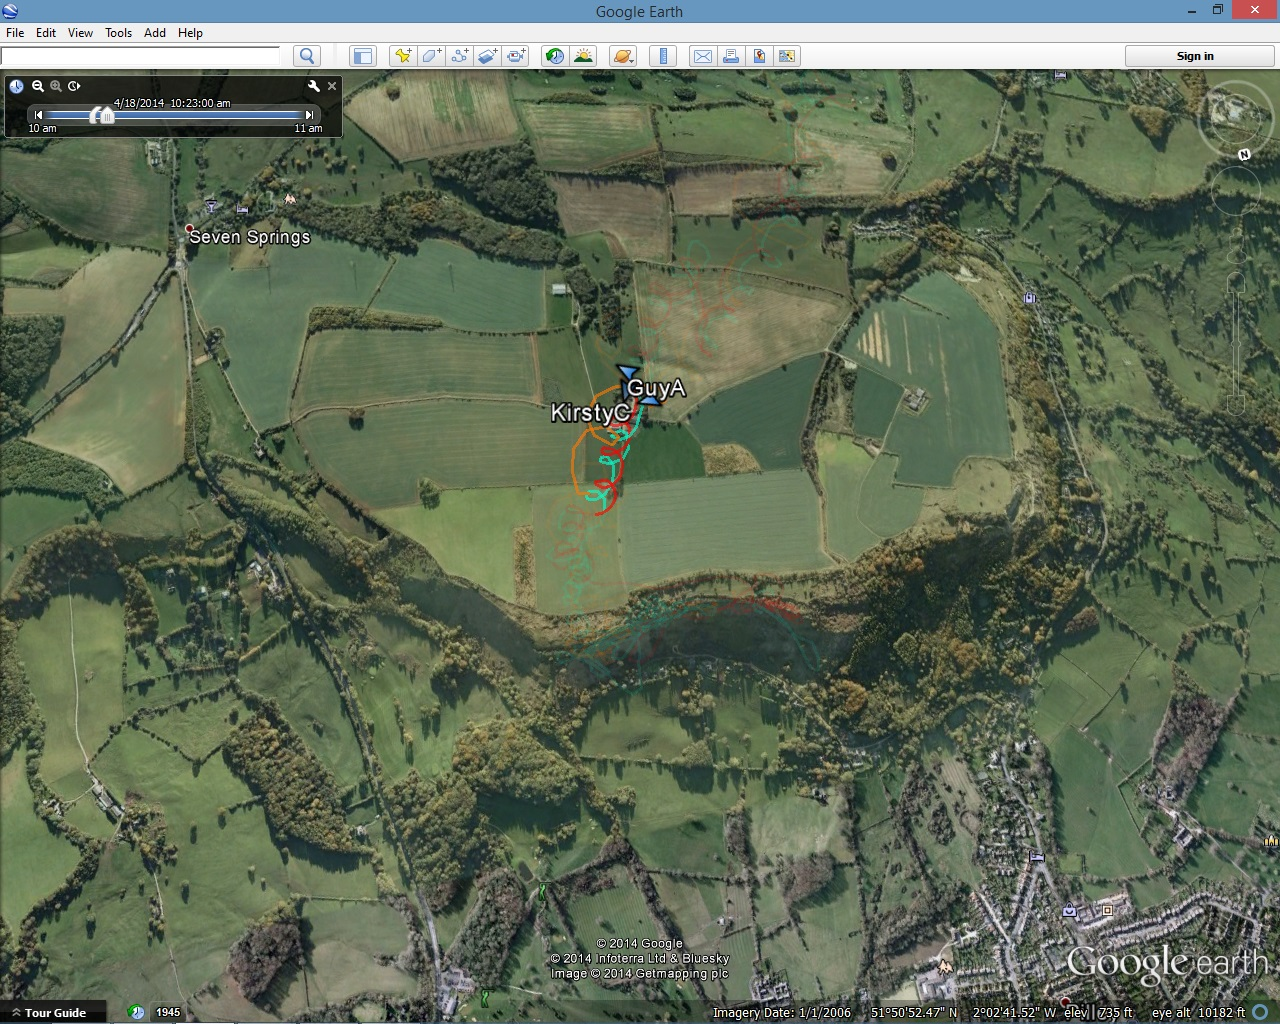 XC Secrets: Learning From Tracklogs (Phil Clark) - Flybubble Blog